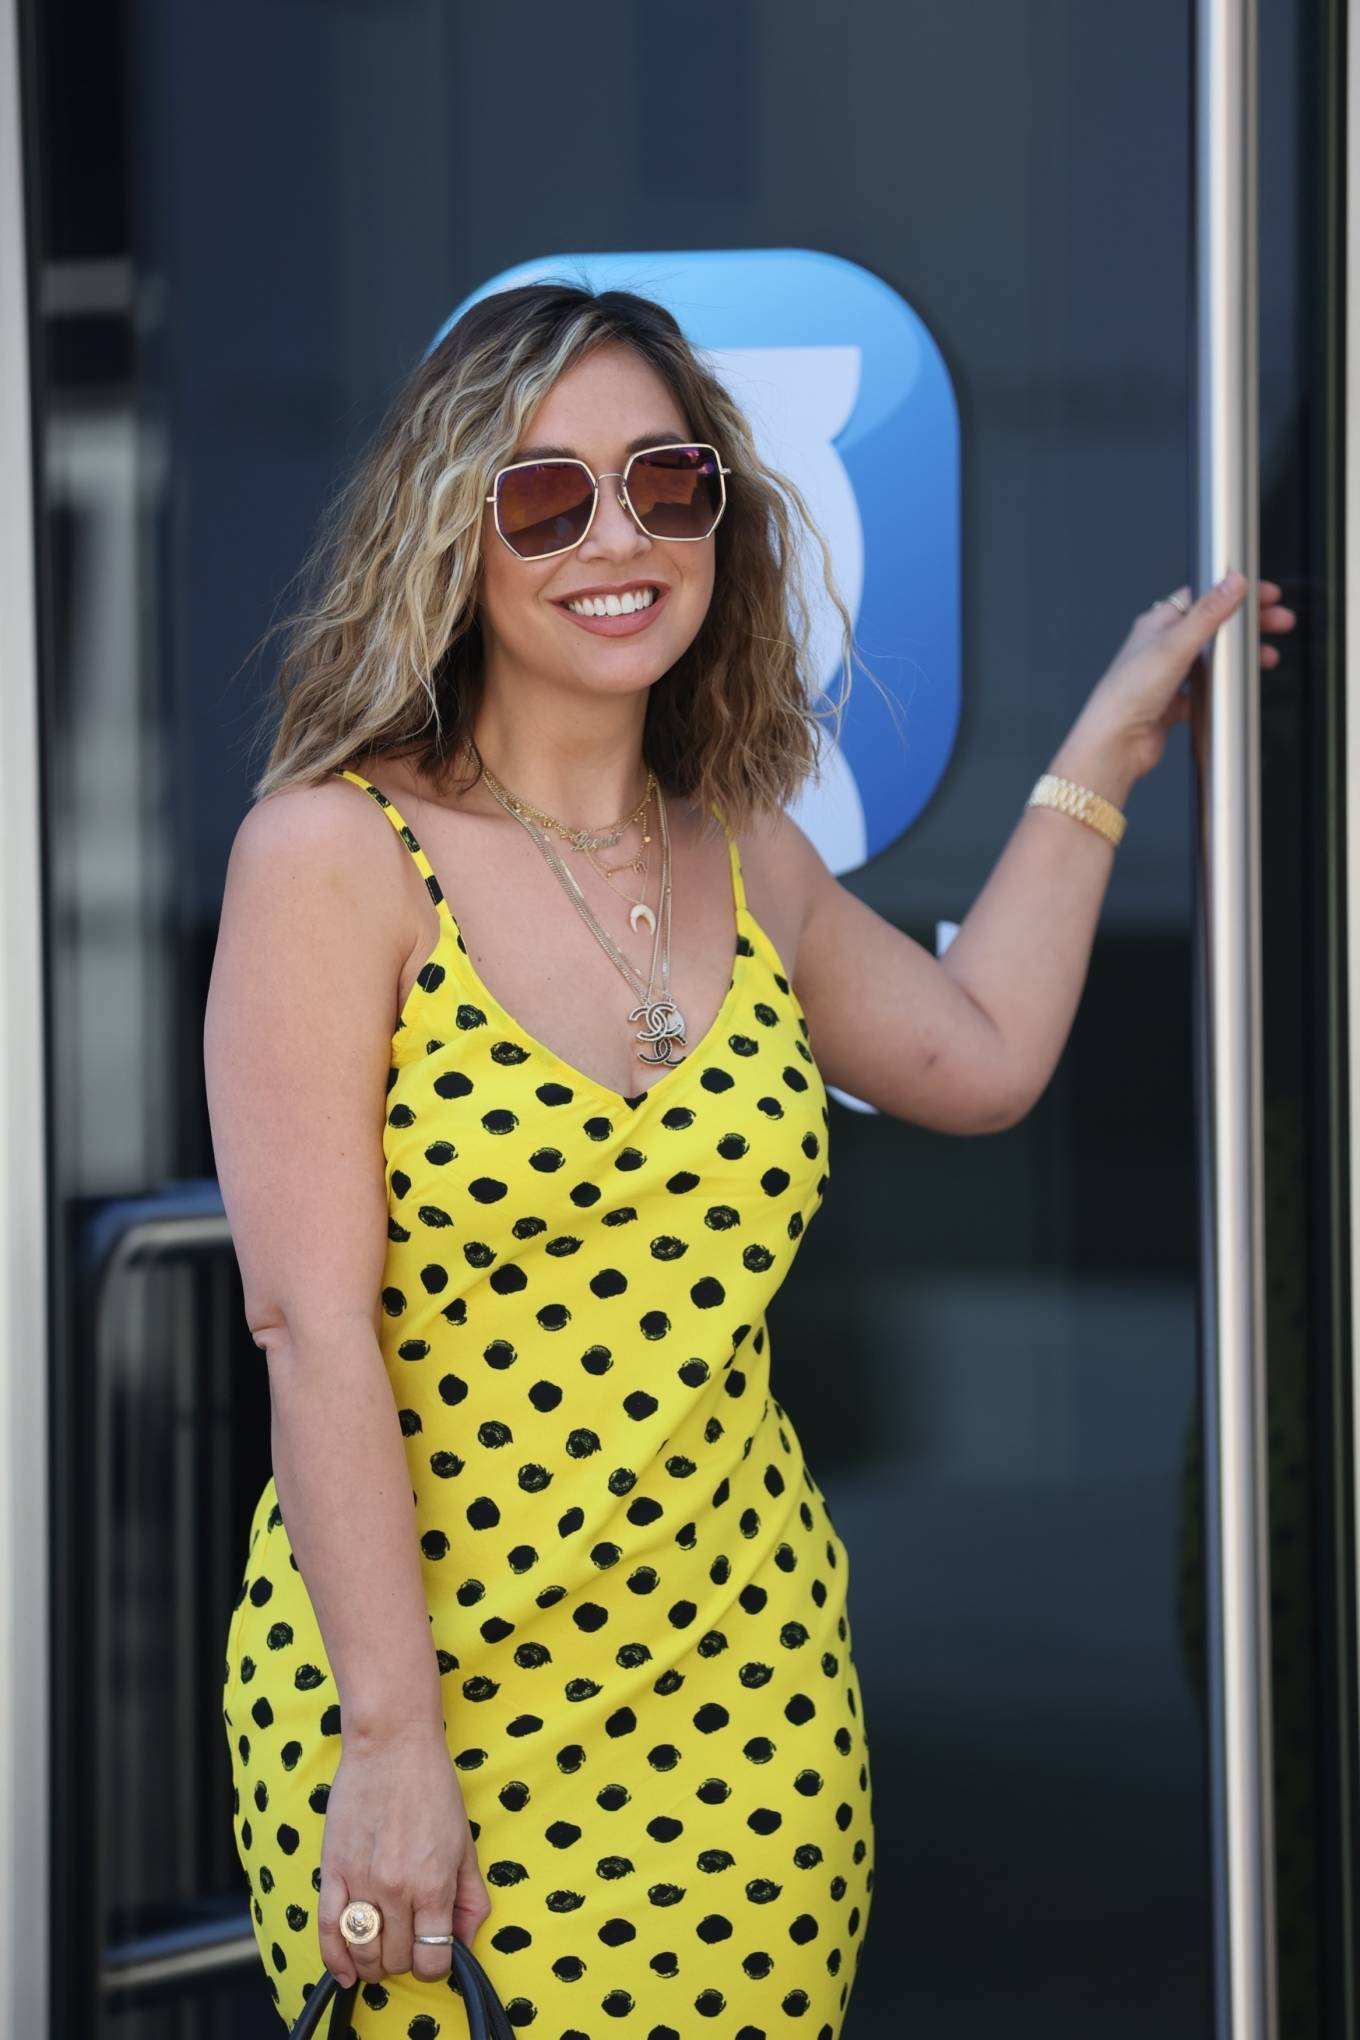 Myleene Klass 2020 : Myleene Klass – In yellow polka dot dress in London-23